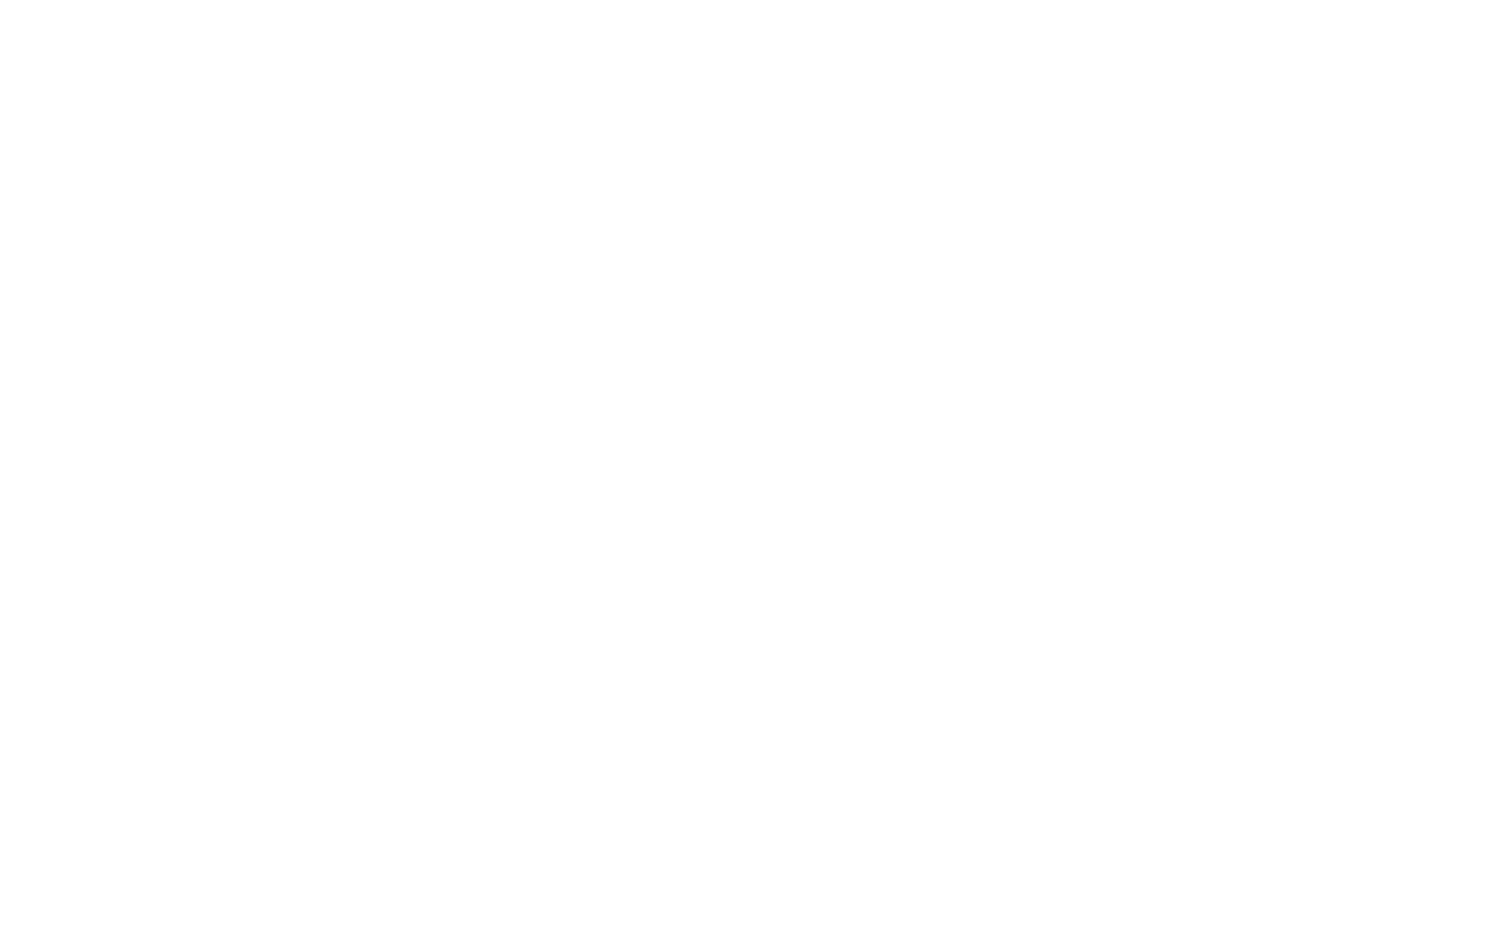 Abby Tutors